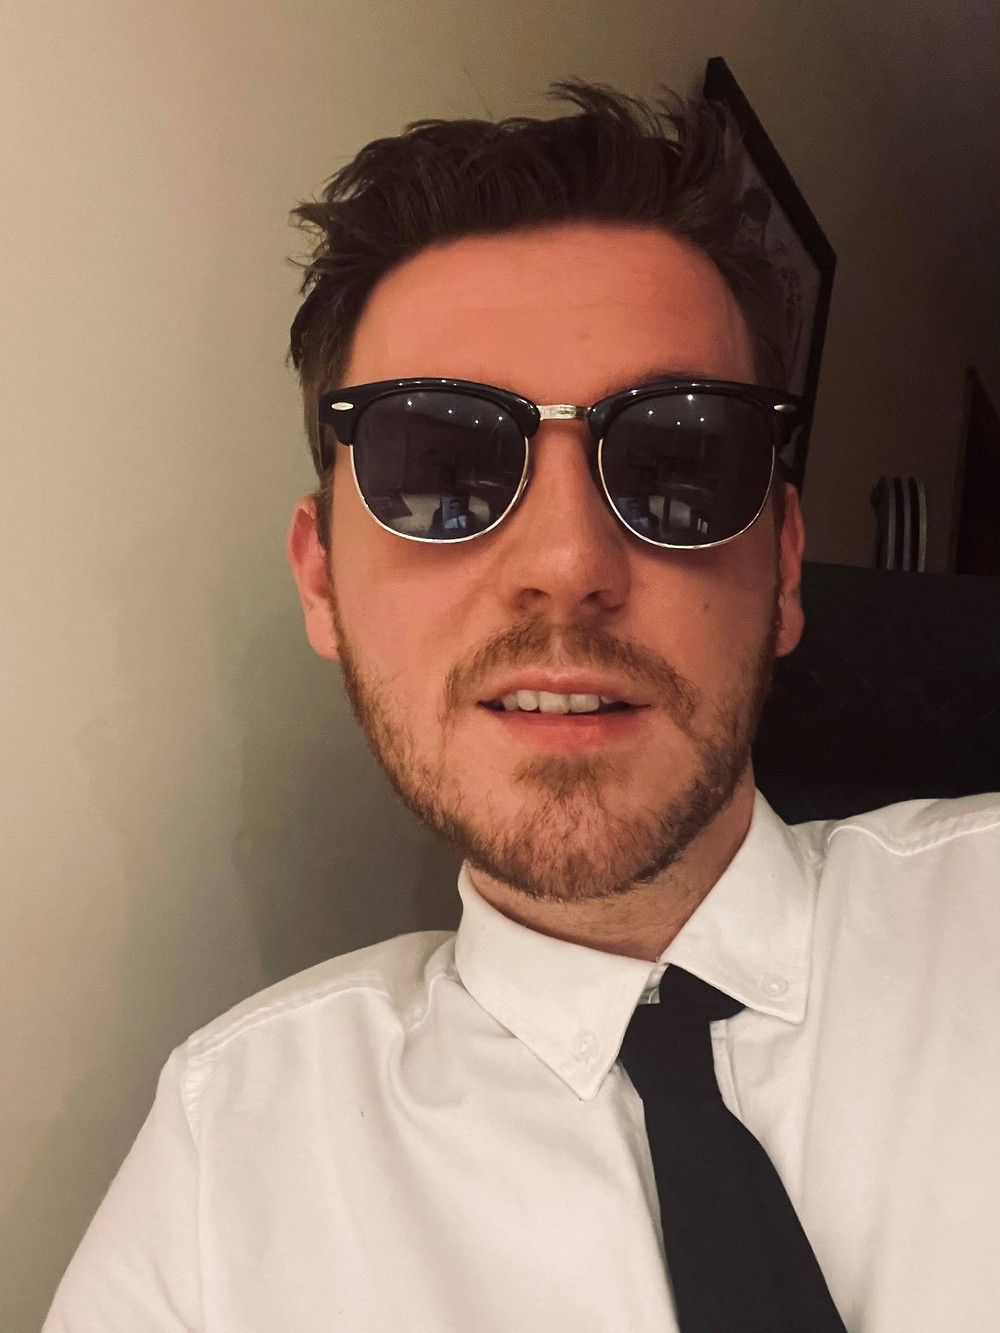 Selfie of Ross wearing a white shirt and black tie, with black sunglasses